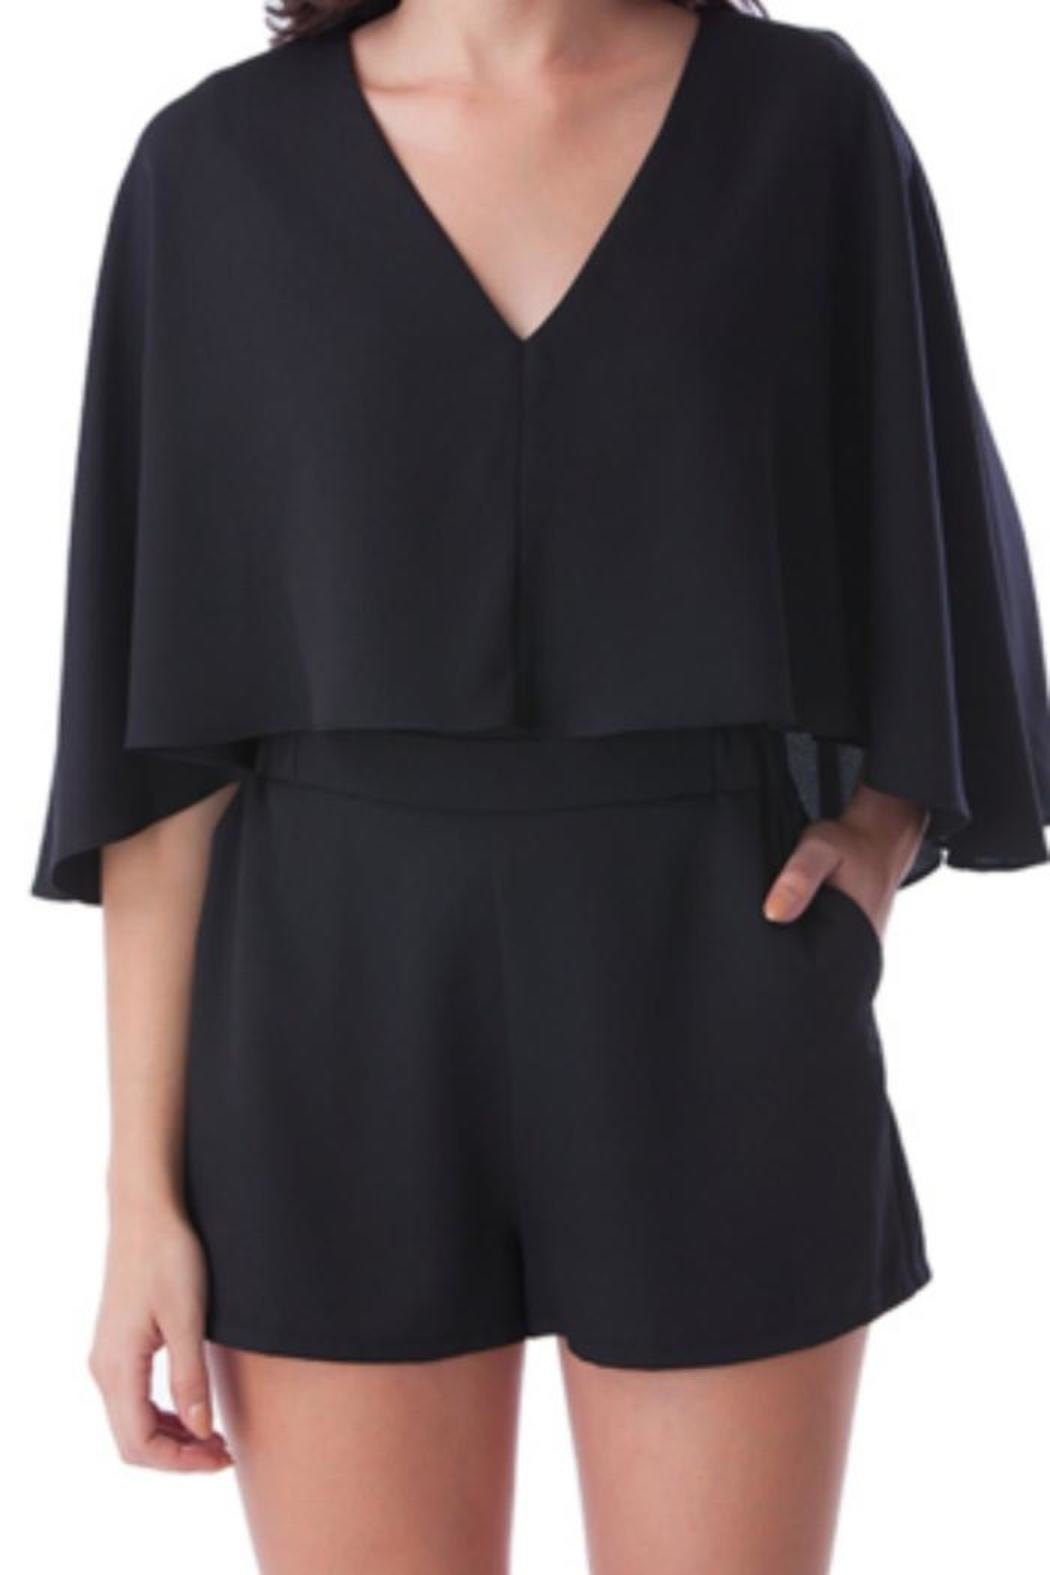 Mustard Seed  Caped Black Romper - Side Cropped Image